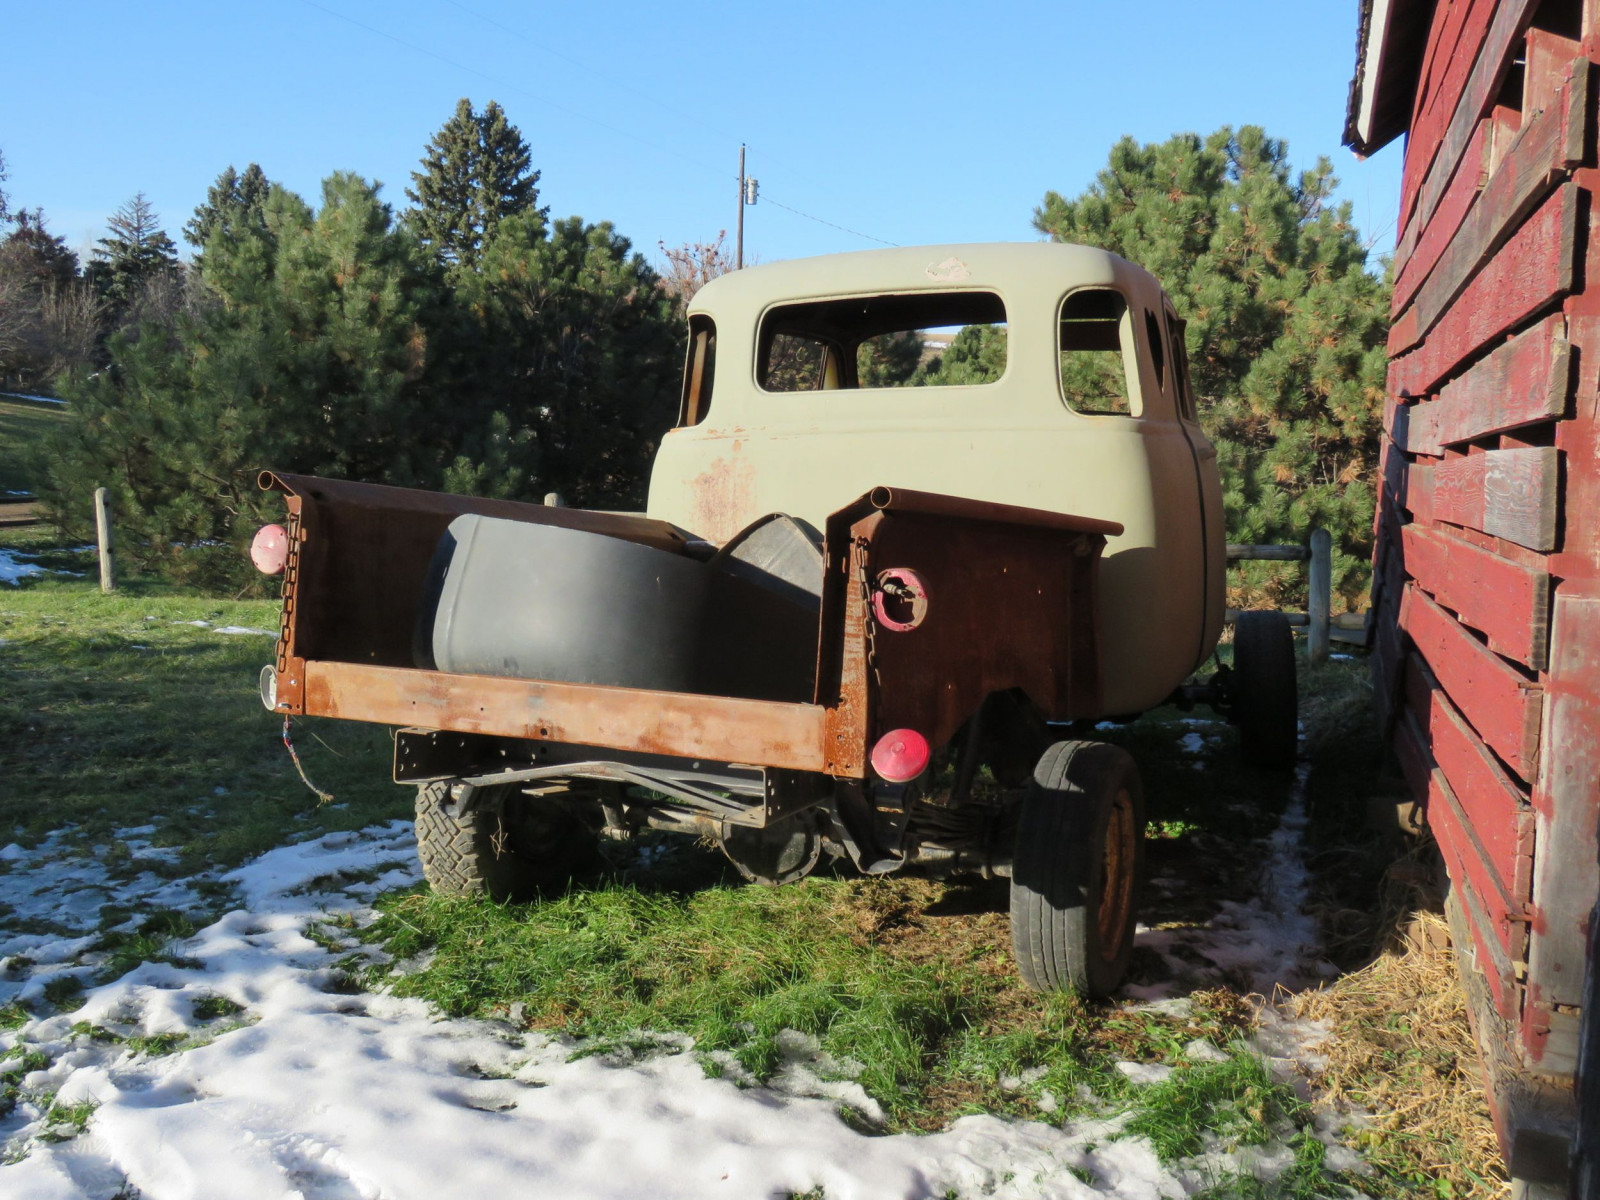 1949 Chevrolet 5 Window Cab Pickup Project - Image 13